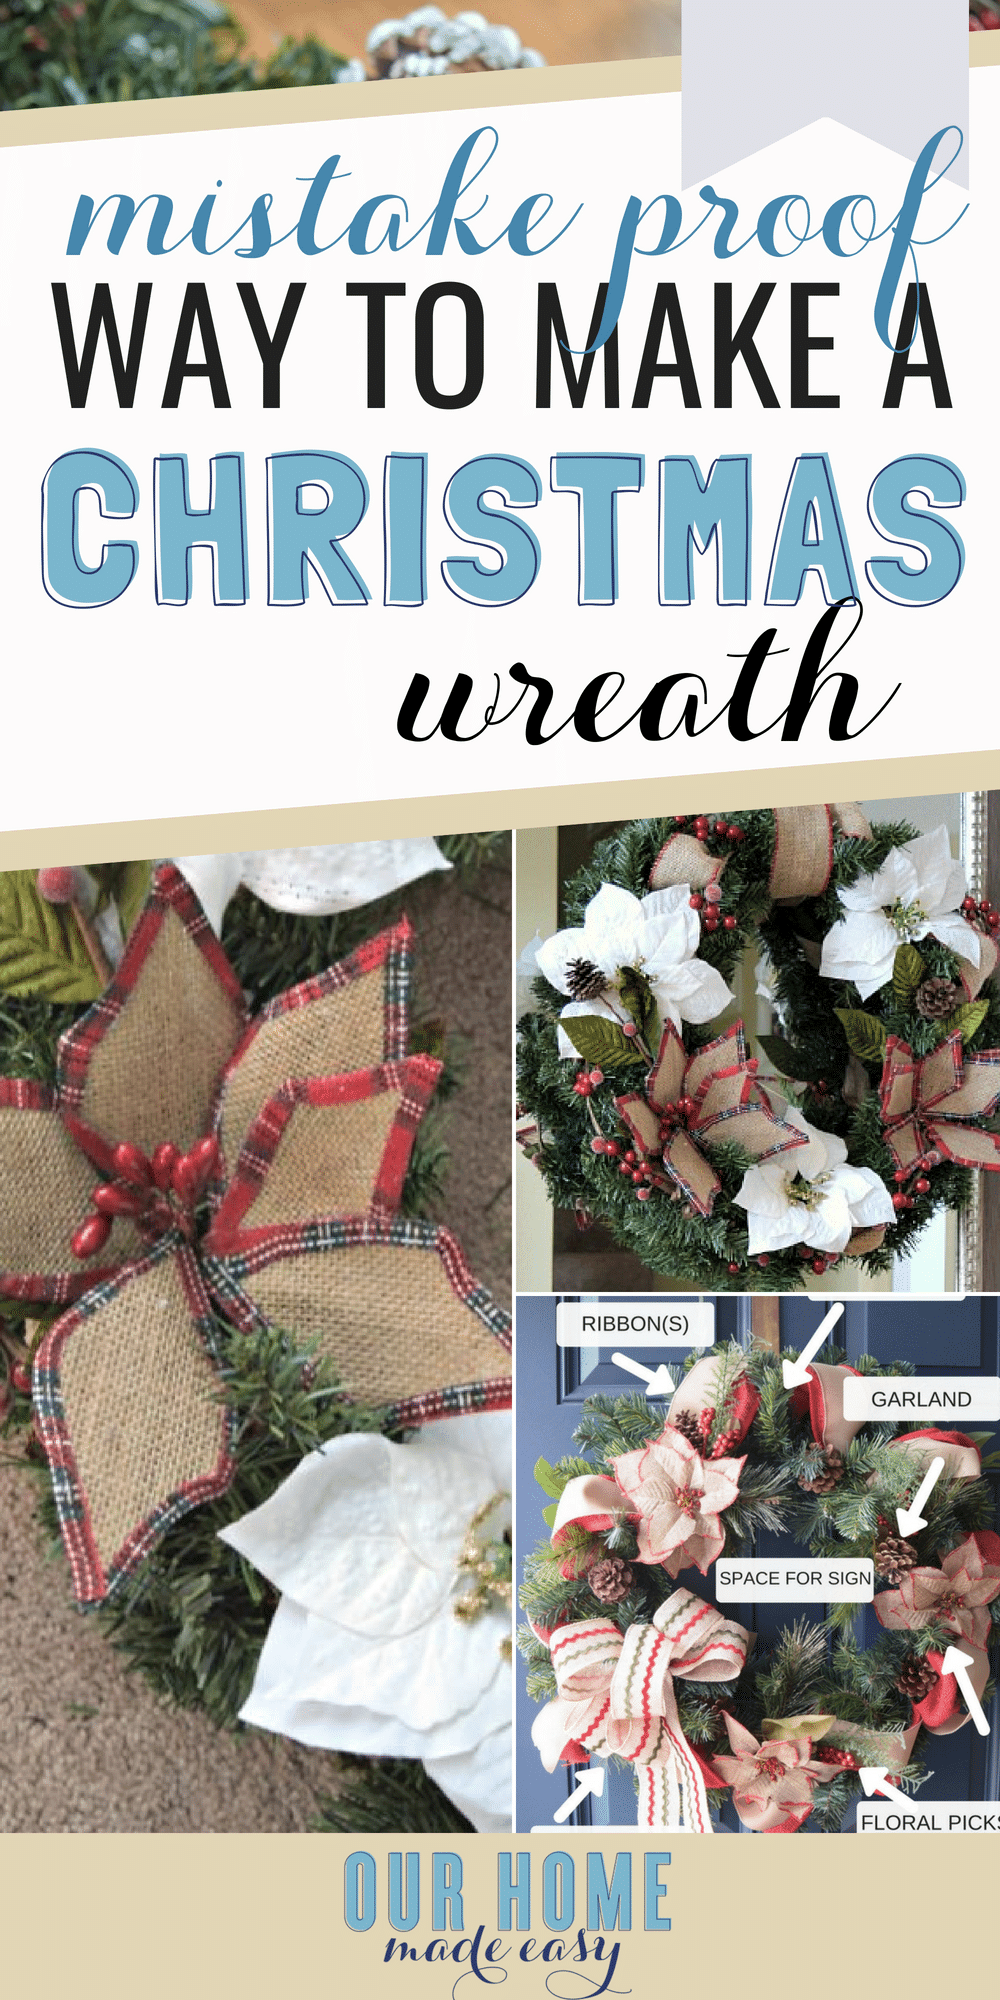 Make this pretty Christmas wreath with this simple formula! Now you can have a Pinterest inspired wreath easily (and its mistake proof)! #Chrismas #home #wreath #homedecor